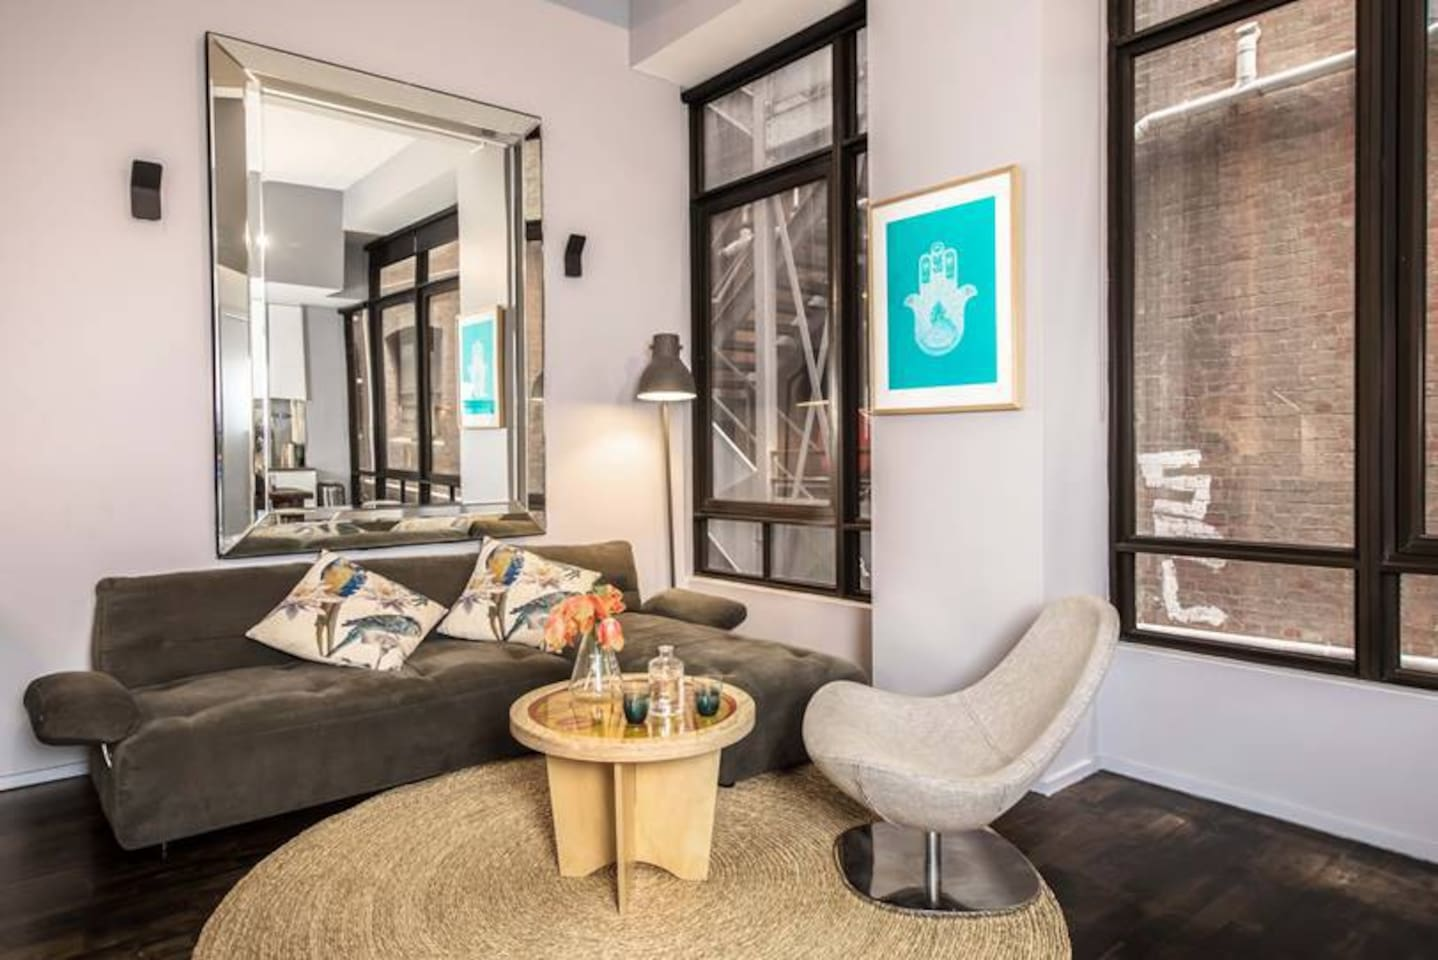 A beautiful space in a fantastic spot in the city especially for foodies! Nice, clean, cosy and stylish apartment.